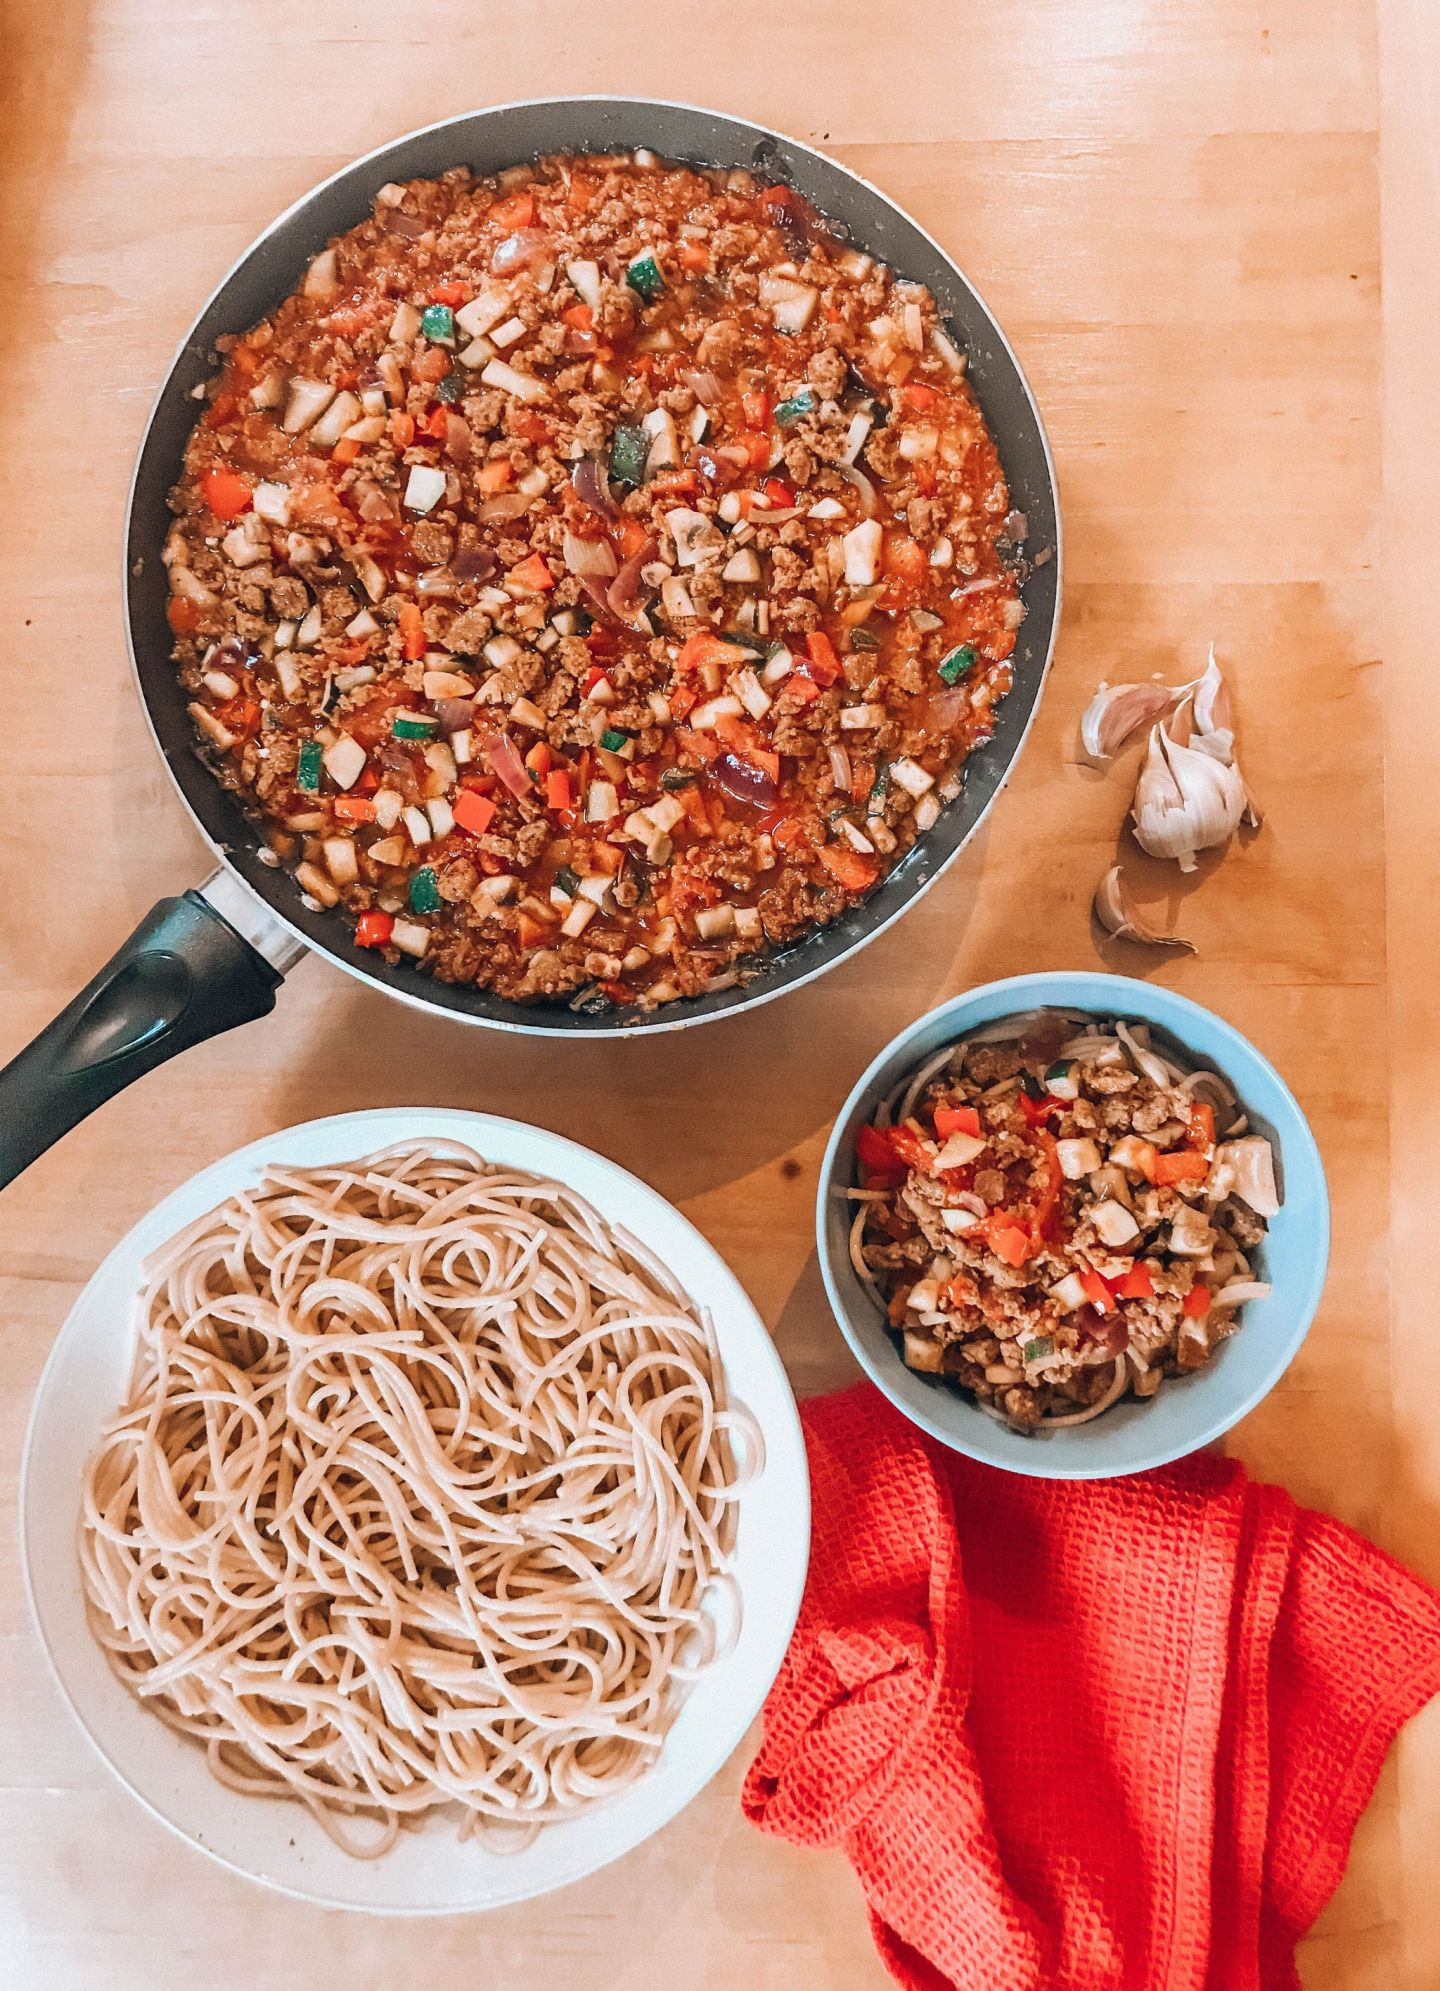 Vegan Spaghetti Bolognese – I was wrong about Quorn